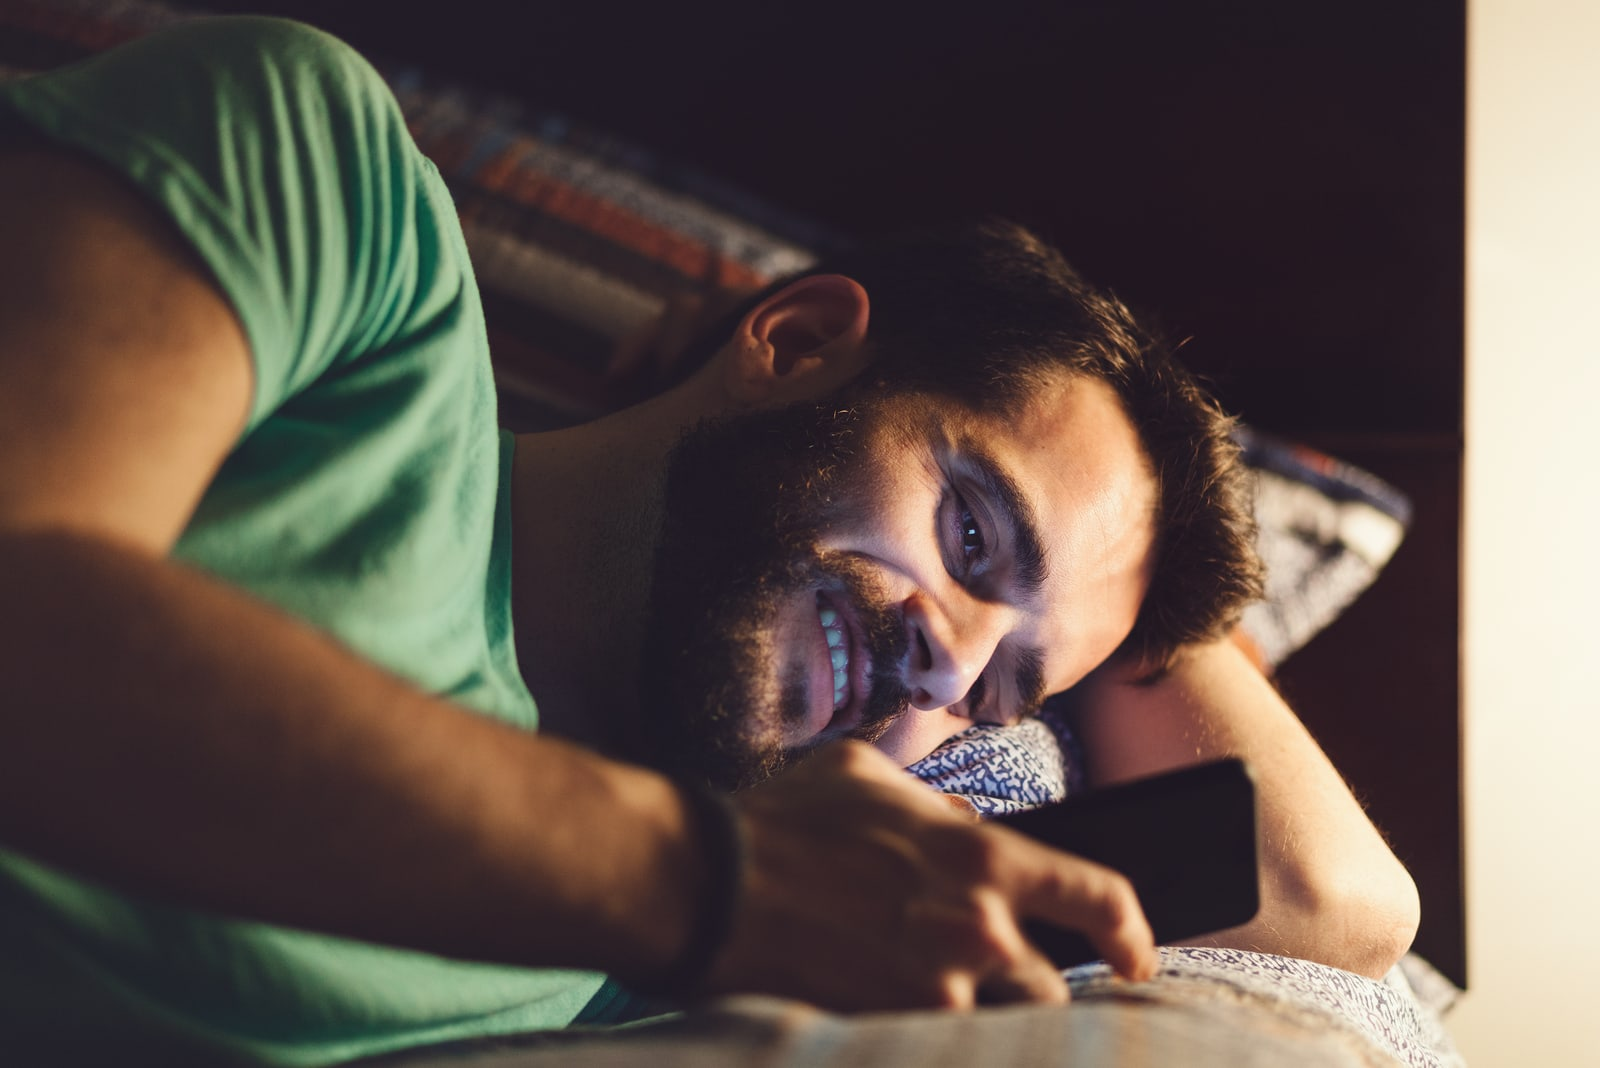 a smiling man with a beard in a green T-shirt lying in bed at night and texting